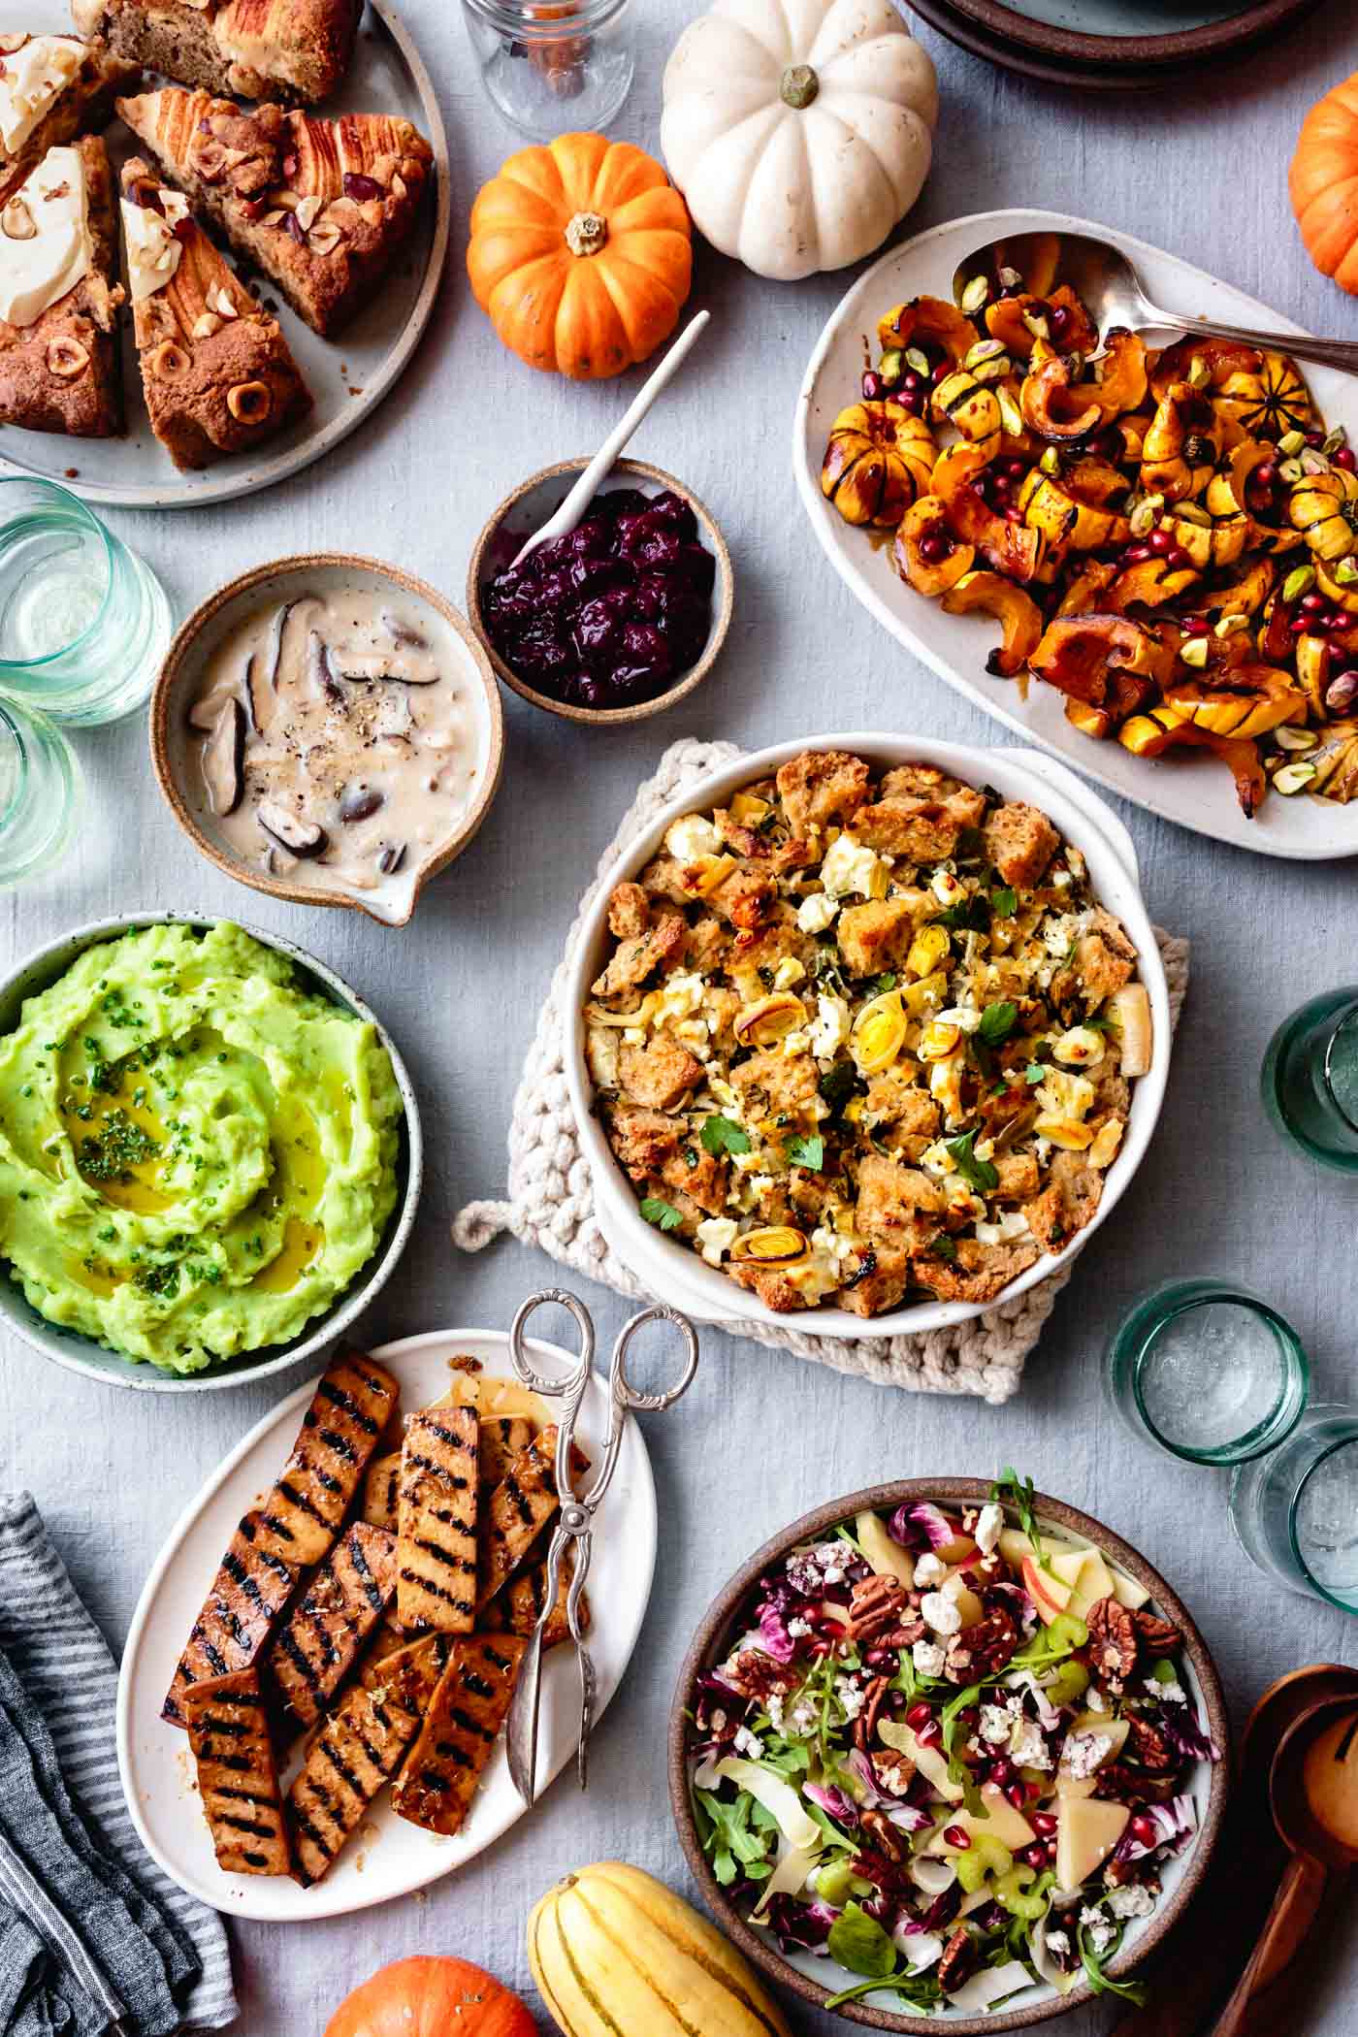 Vegetarian Gluten-Free Thanksgiving Recipes • The Bojon Gourmet - gluten free recipes vegetarian